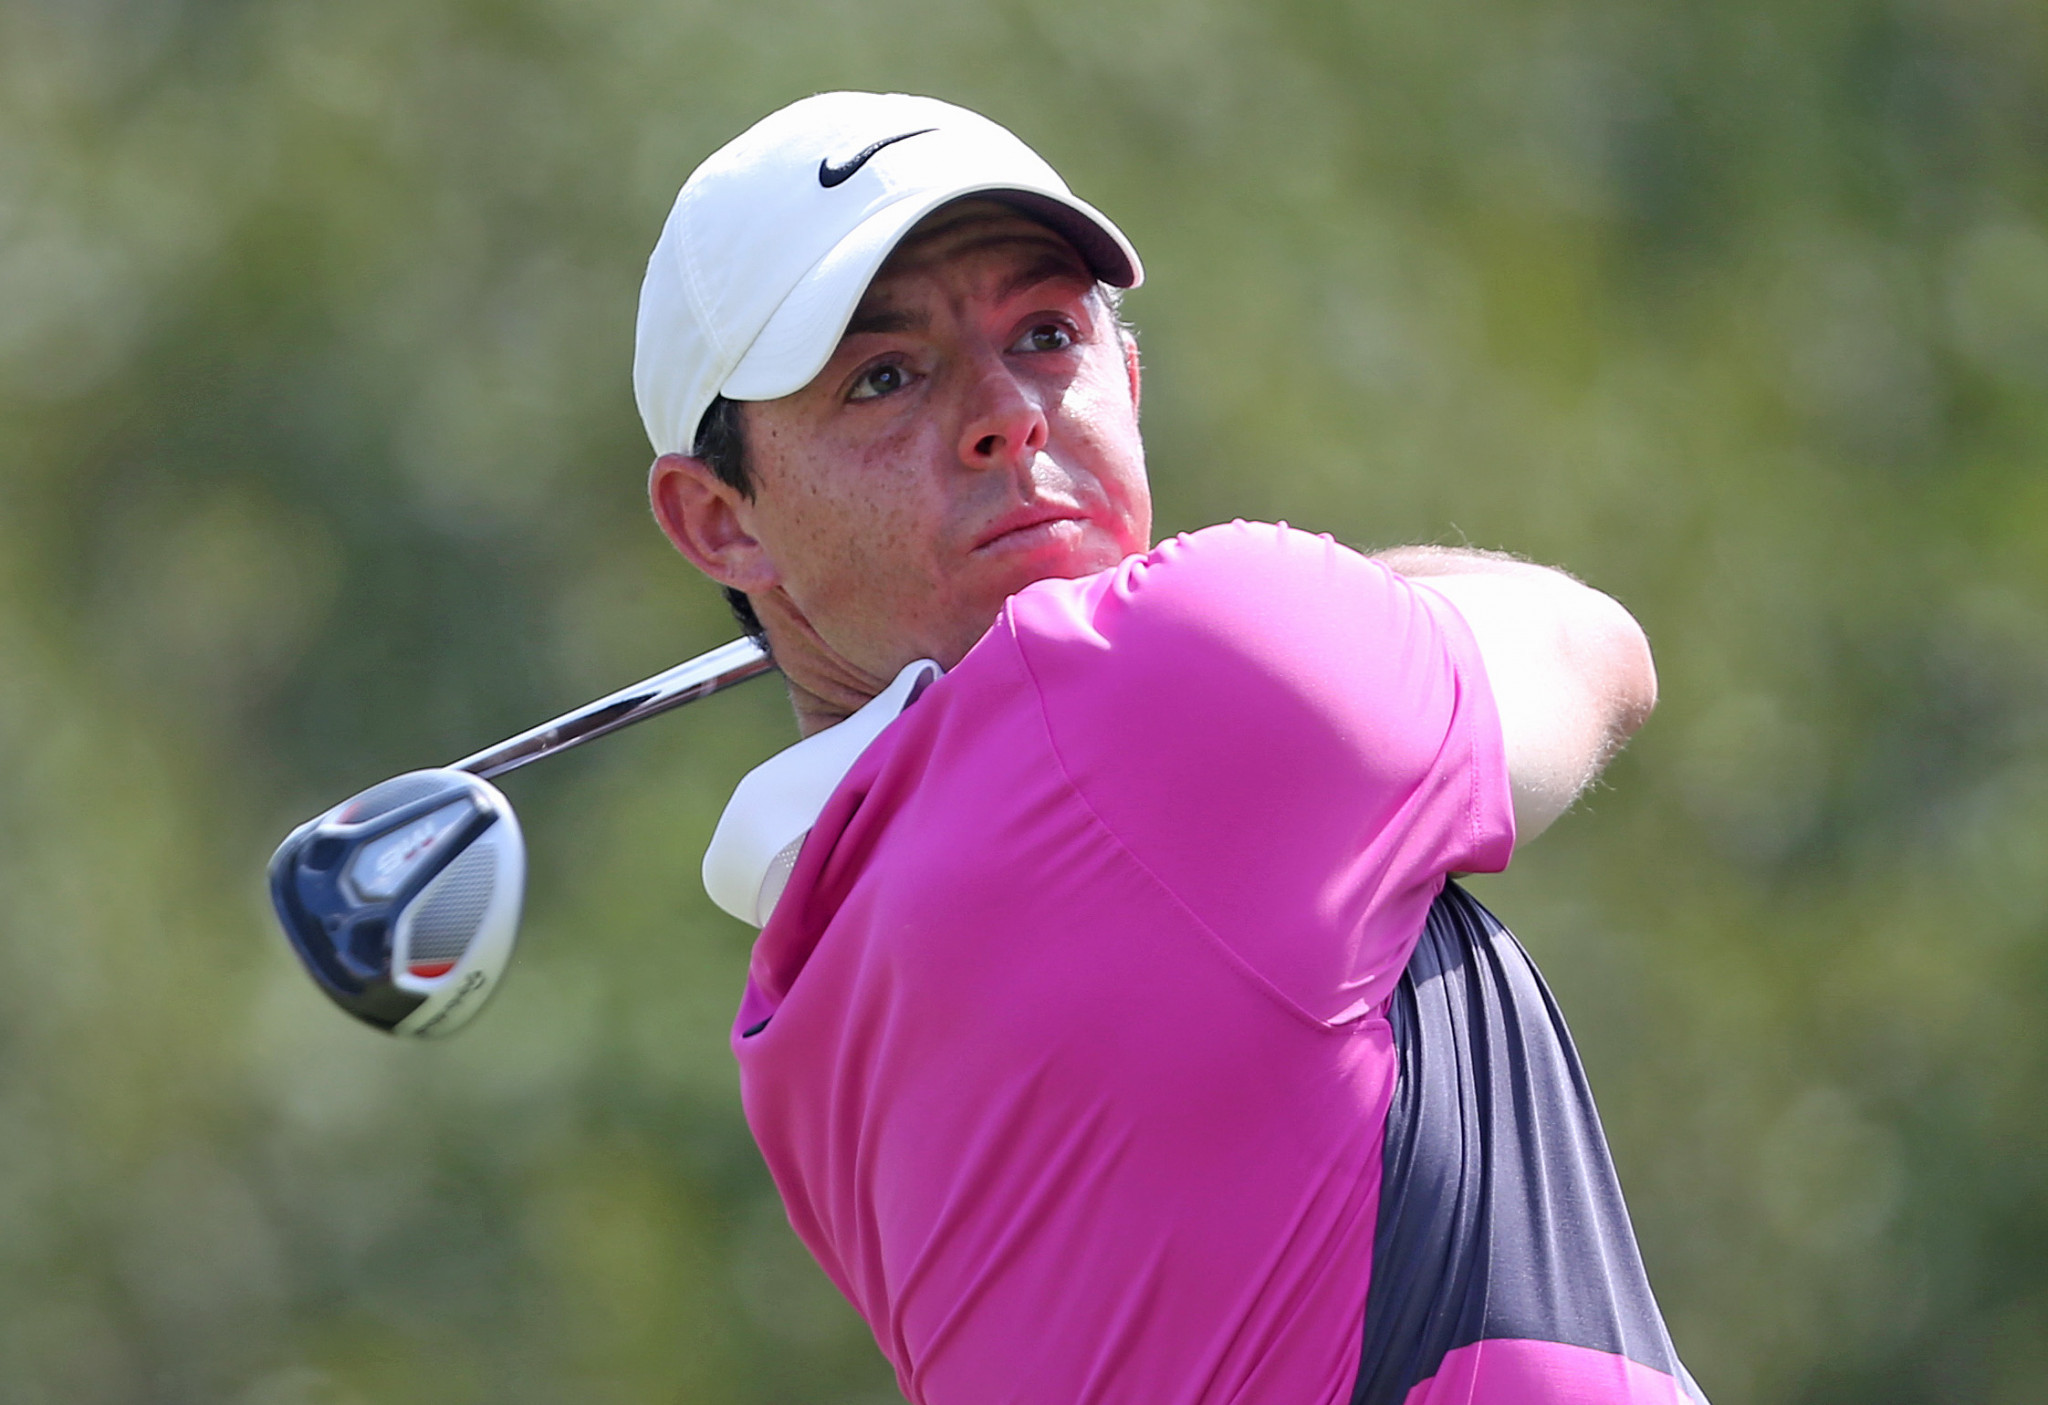 McIlroy rebounds from Open nightmare to lead WGC-FedEx St. Jude Invitational going into final round